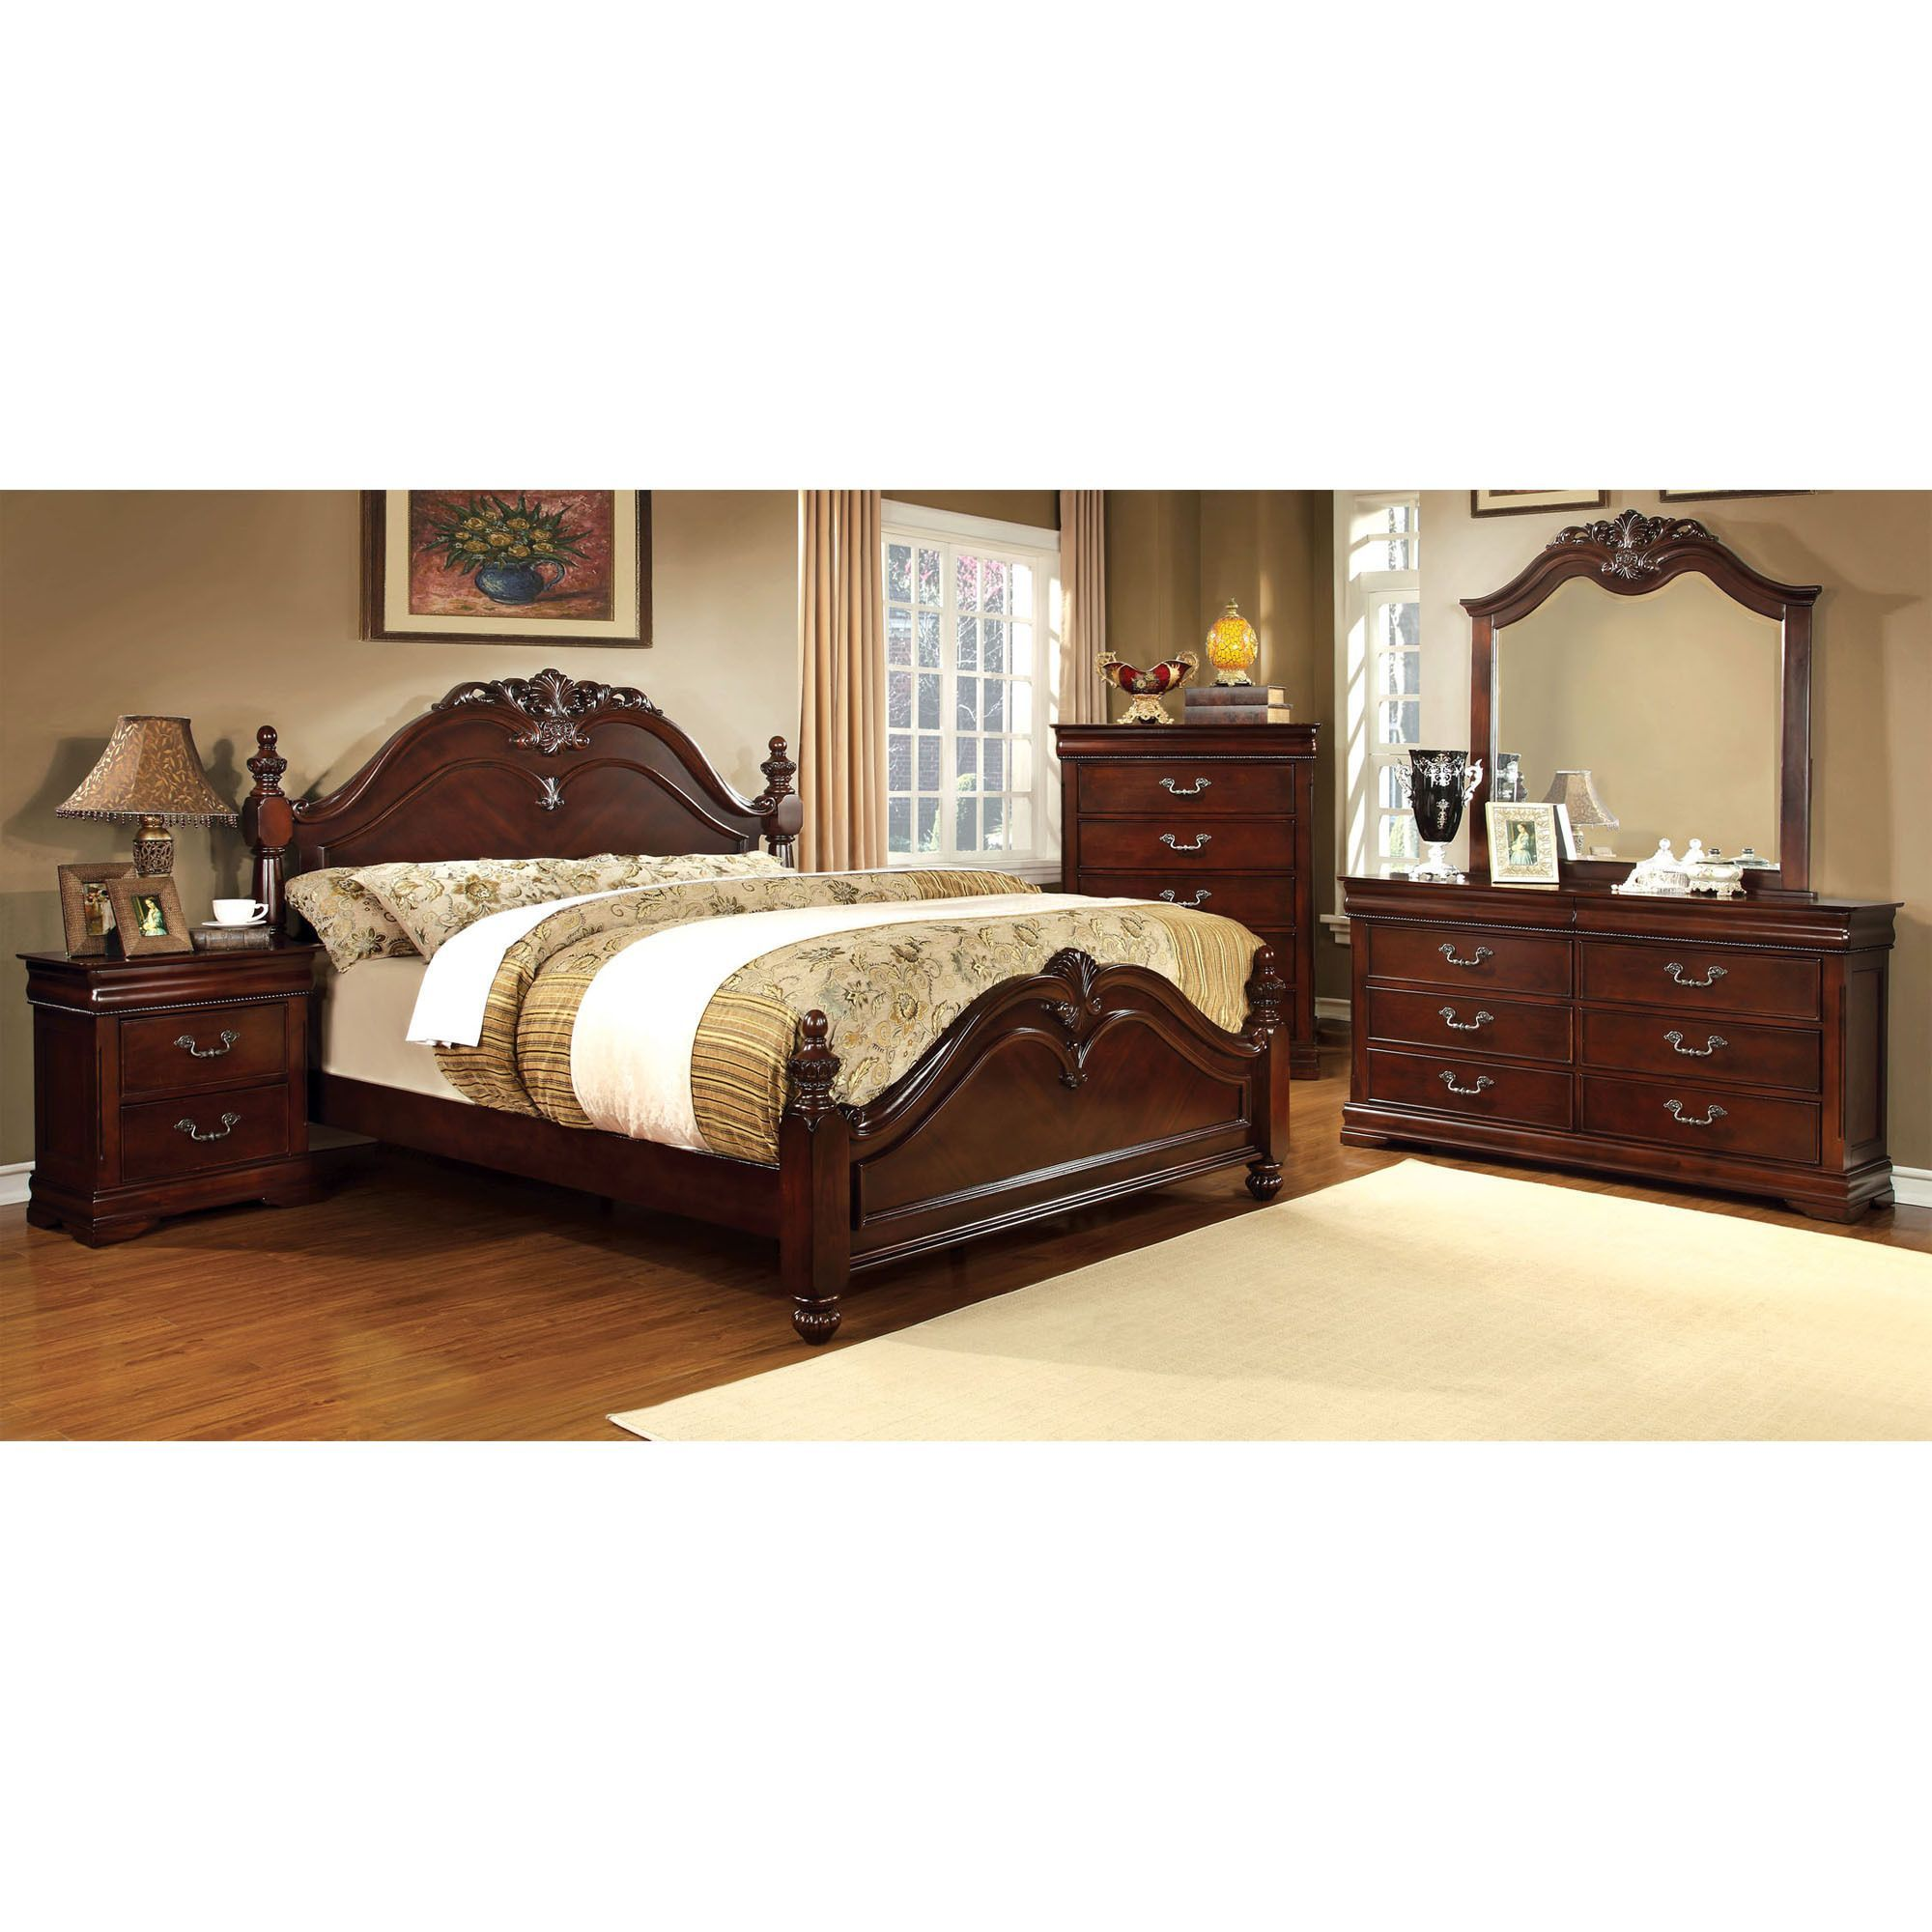 Free Shipping Furniture Stores: Metal Bedroom Furniture Home Goods: Free Shipping On